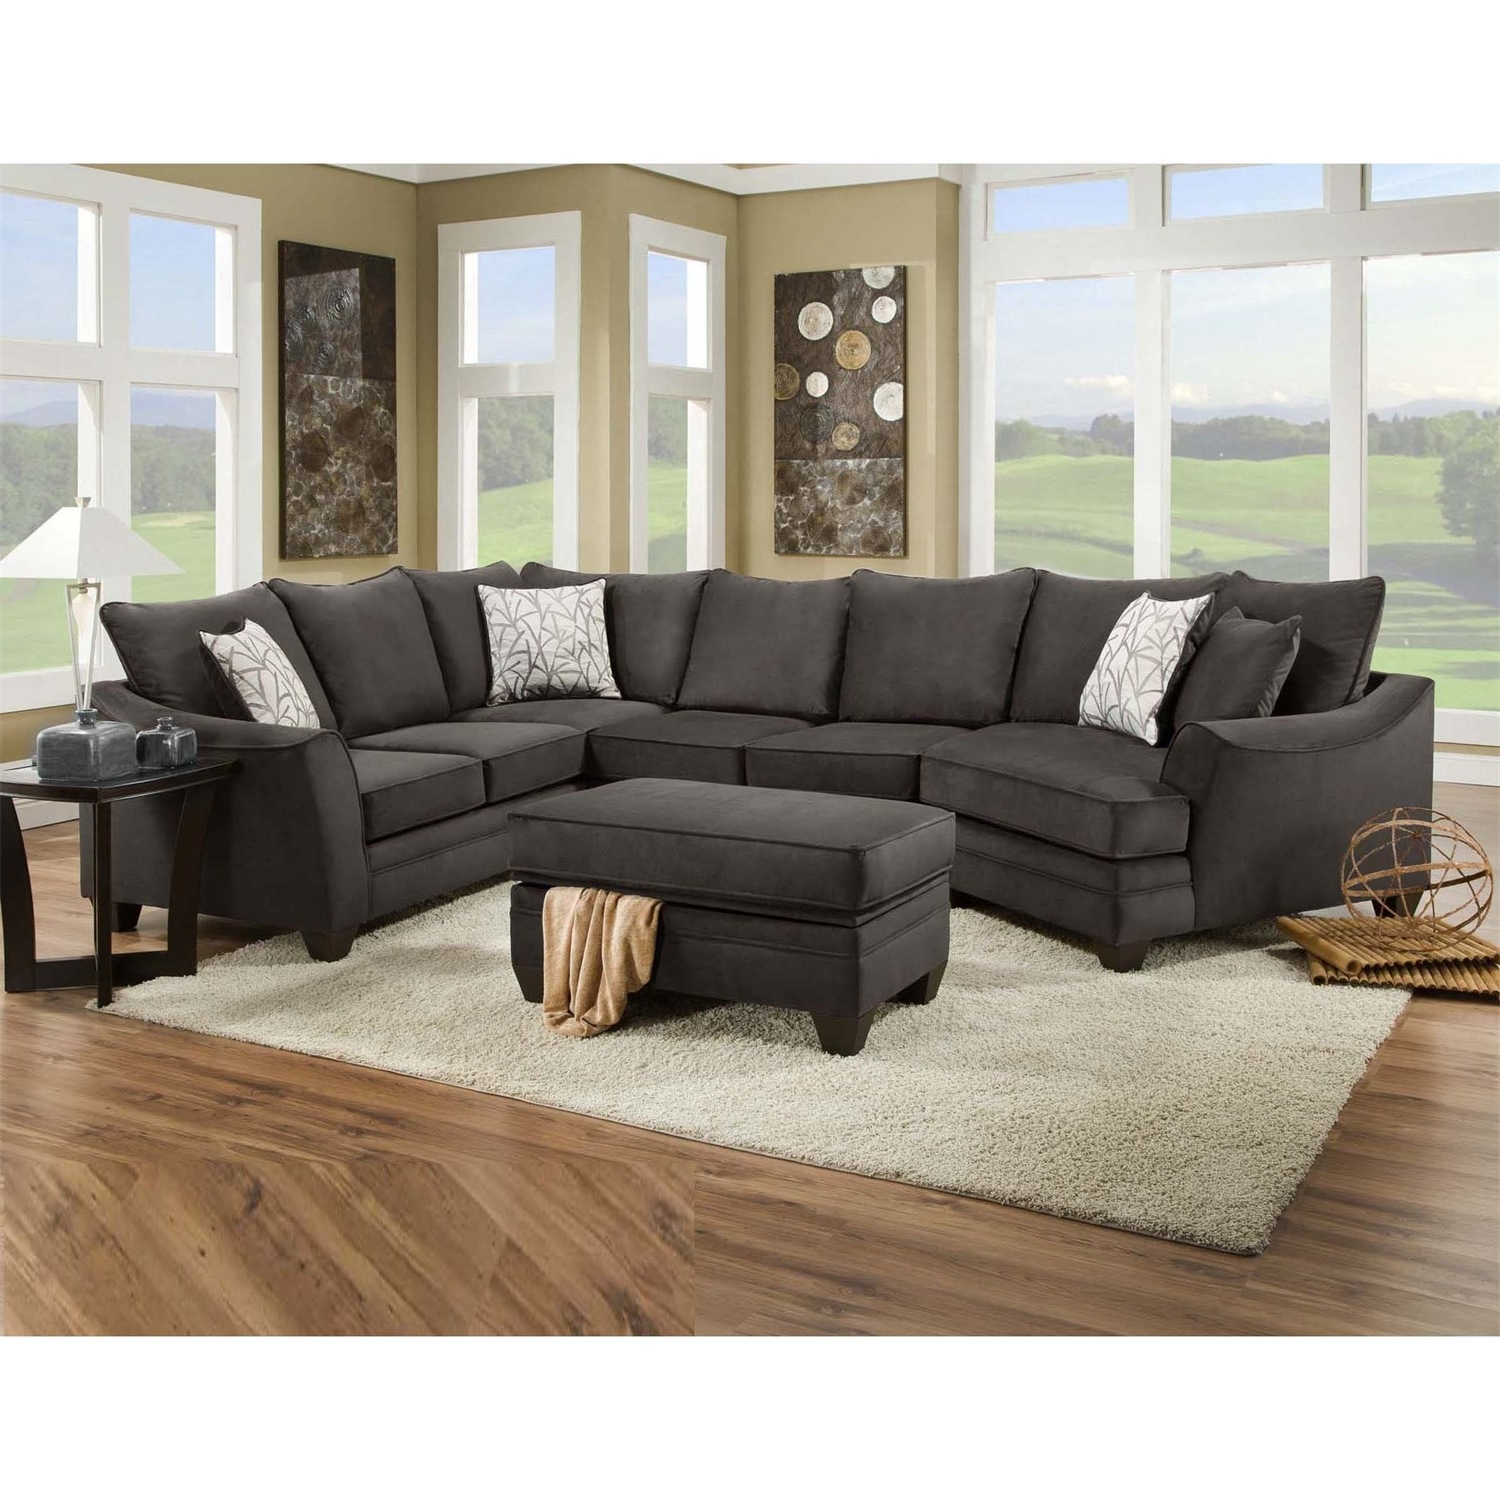 Homeclick With Home Furniture Sectional Sofas (View 3 of 15)